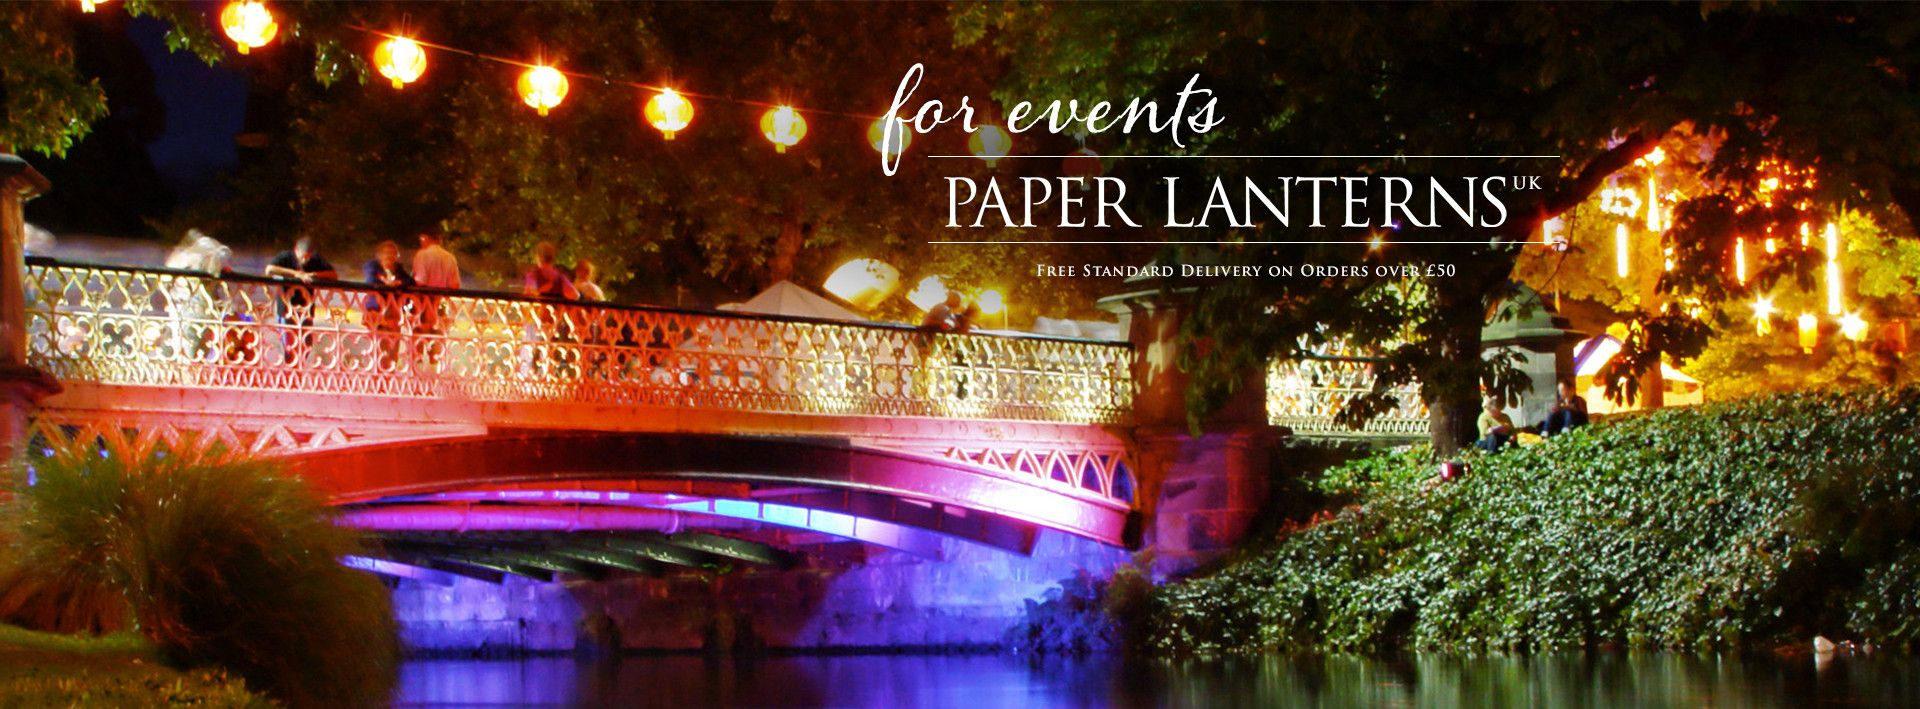 Paper Lanterns for events and weddings - Paper Lanterns UK